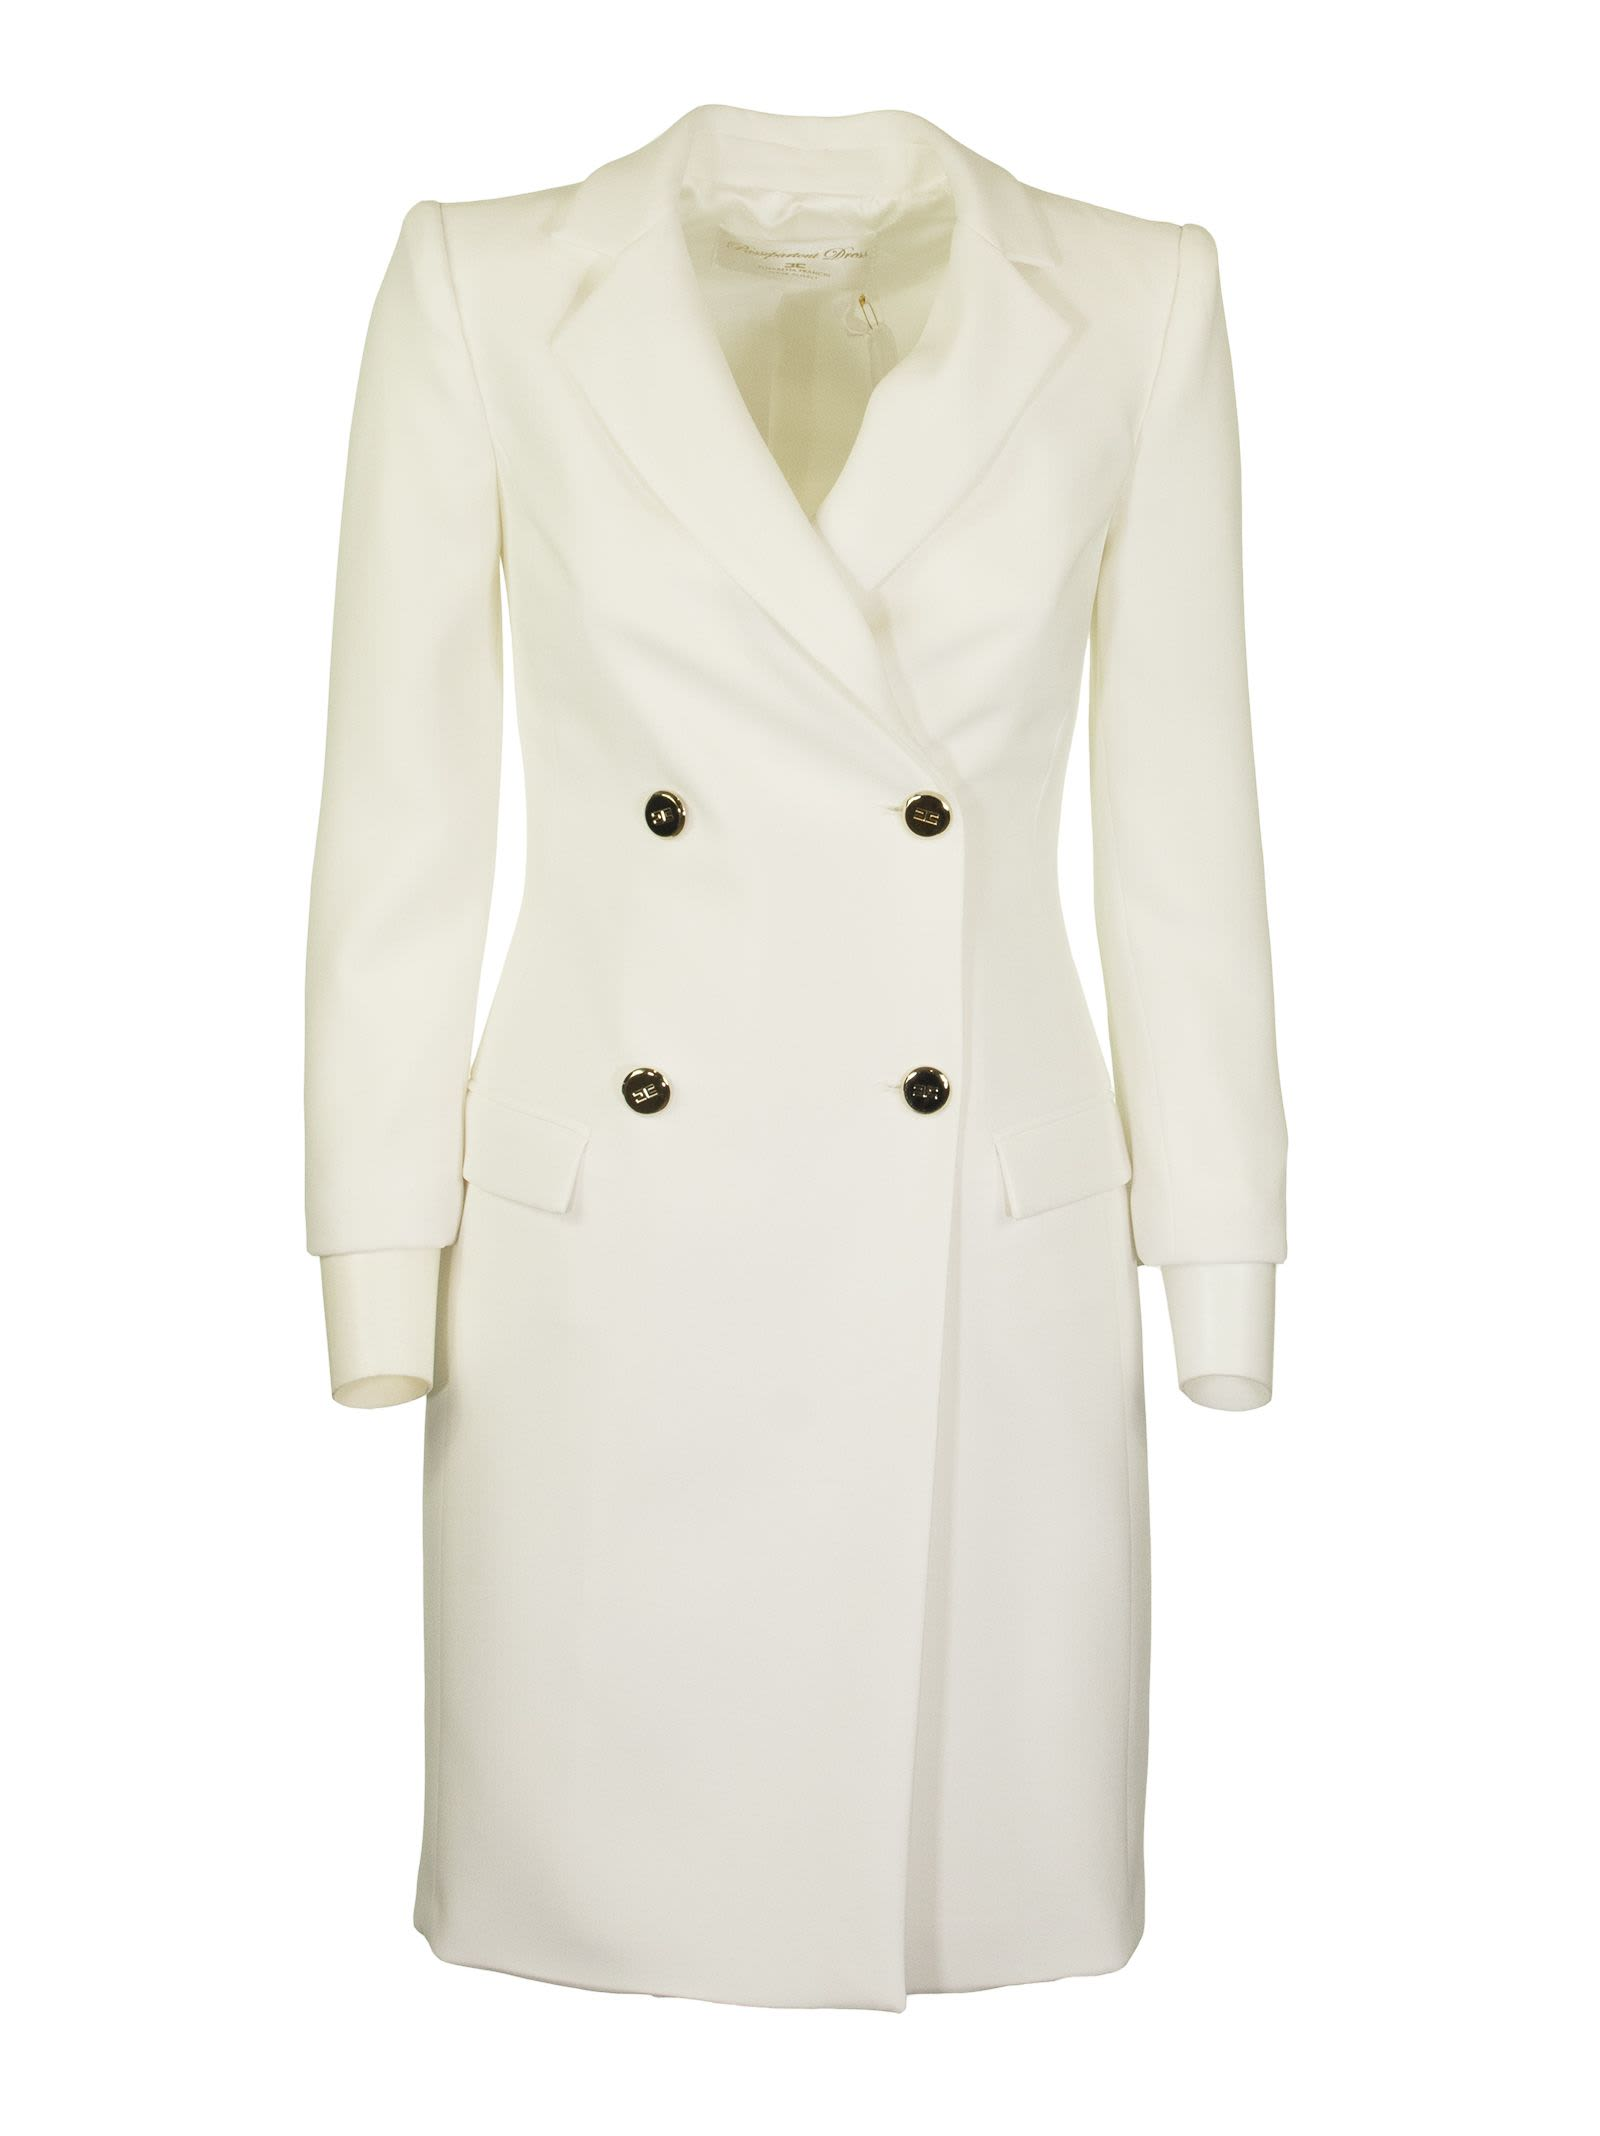 Elisabetta Franchi Celyn B. Ivory Dress